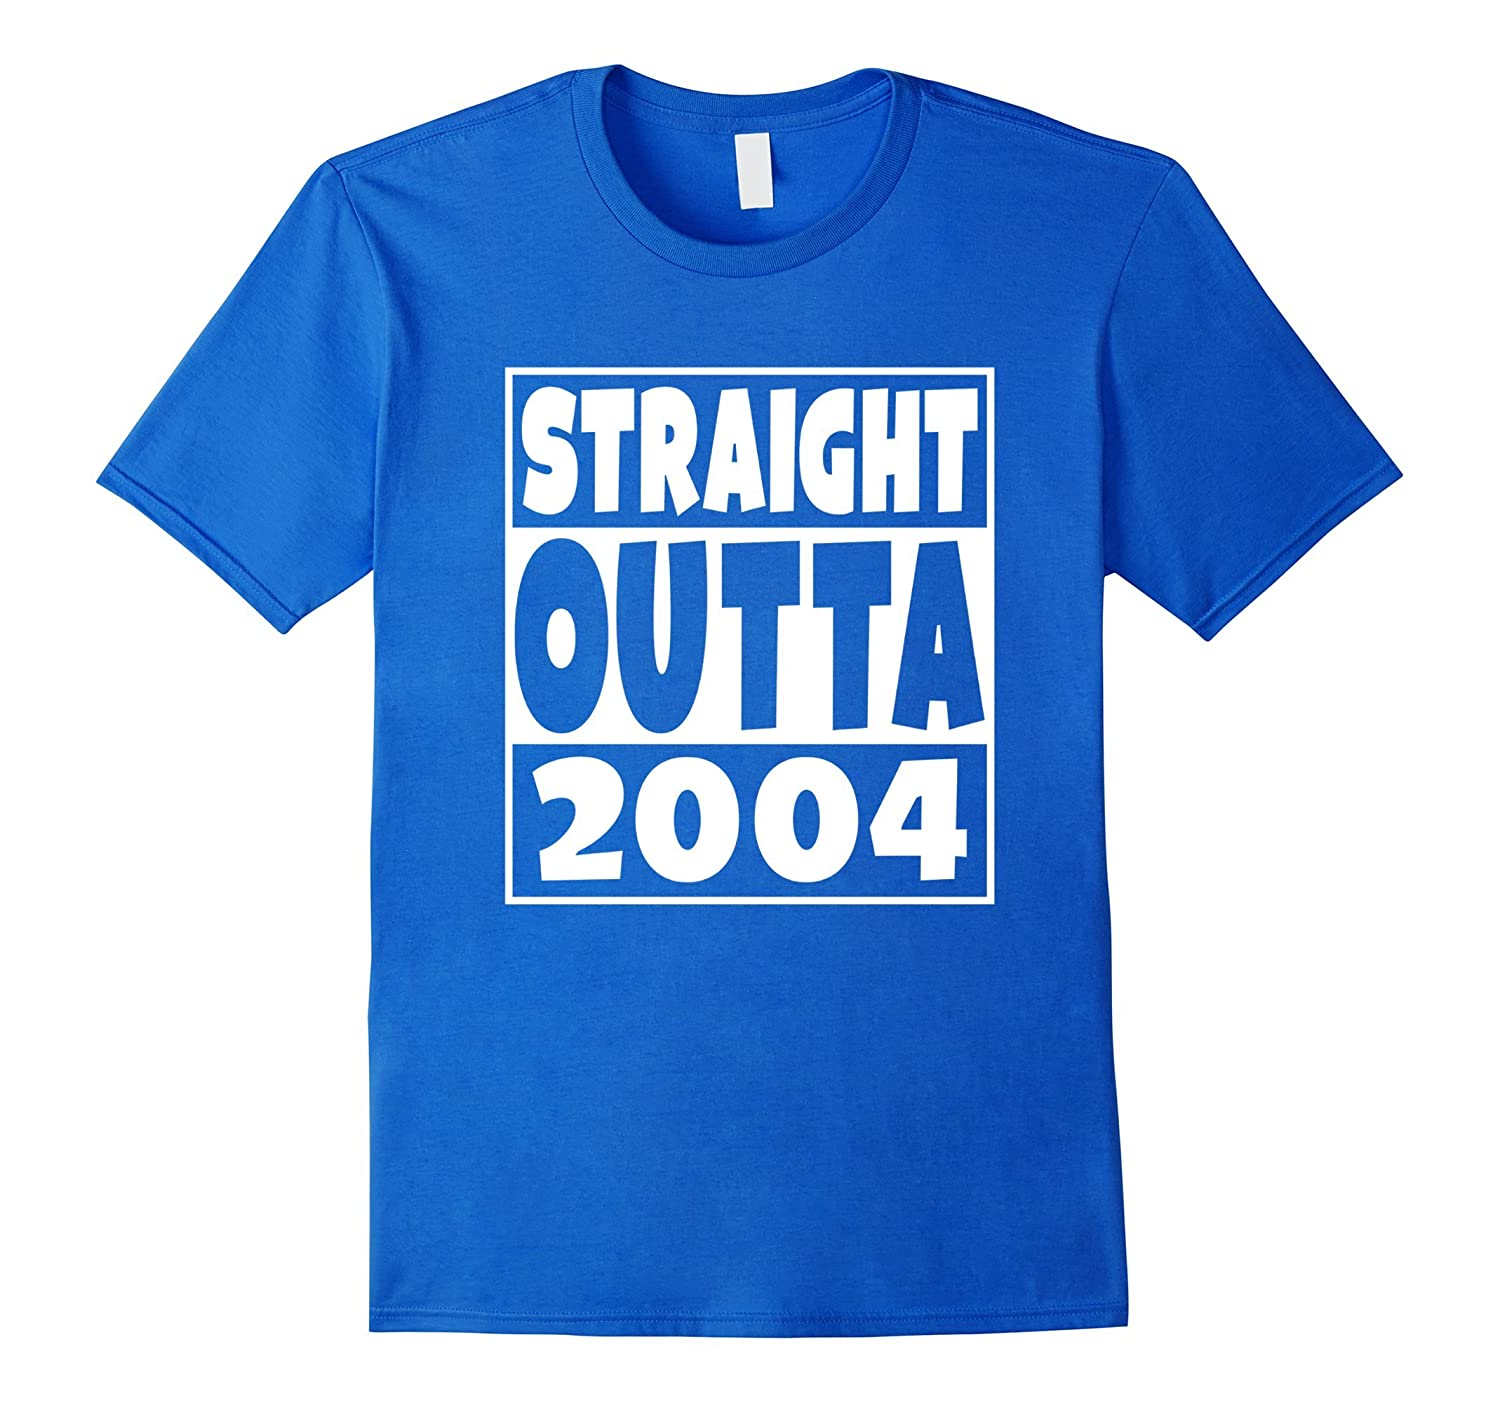 Straight Outta 2004 Funny 13th Birthday Party T Shirt CL Colamaga